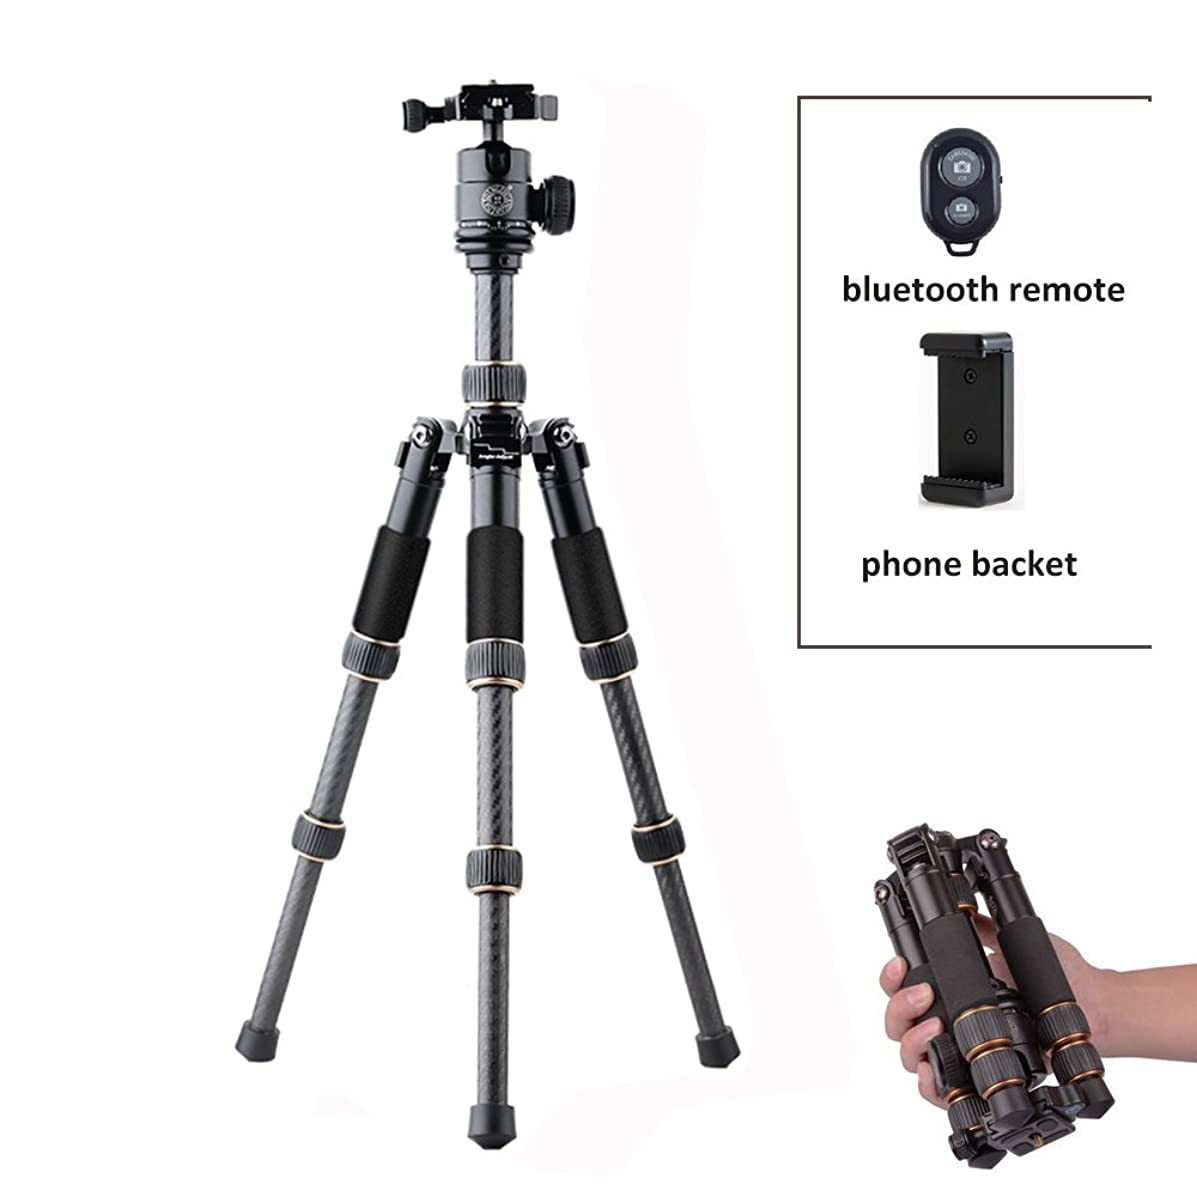 QZSD Q166C Carbon Fiber Portable Traveling Desktop Mini Tripod Monopod Sefie Sticker with Ball Head for Canon Nikon Sony DSLR Cameras and iPhone Smartphone, Phone Holder and Bluetooth as Gifts